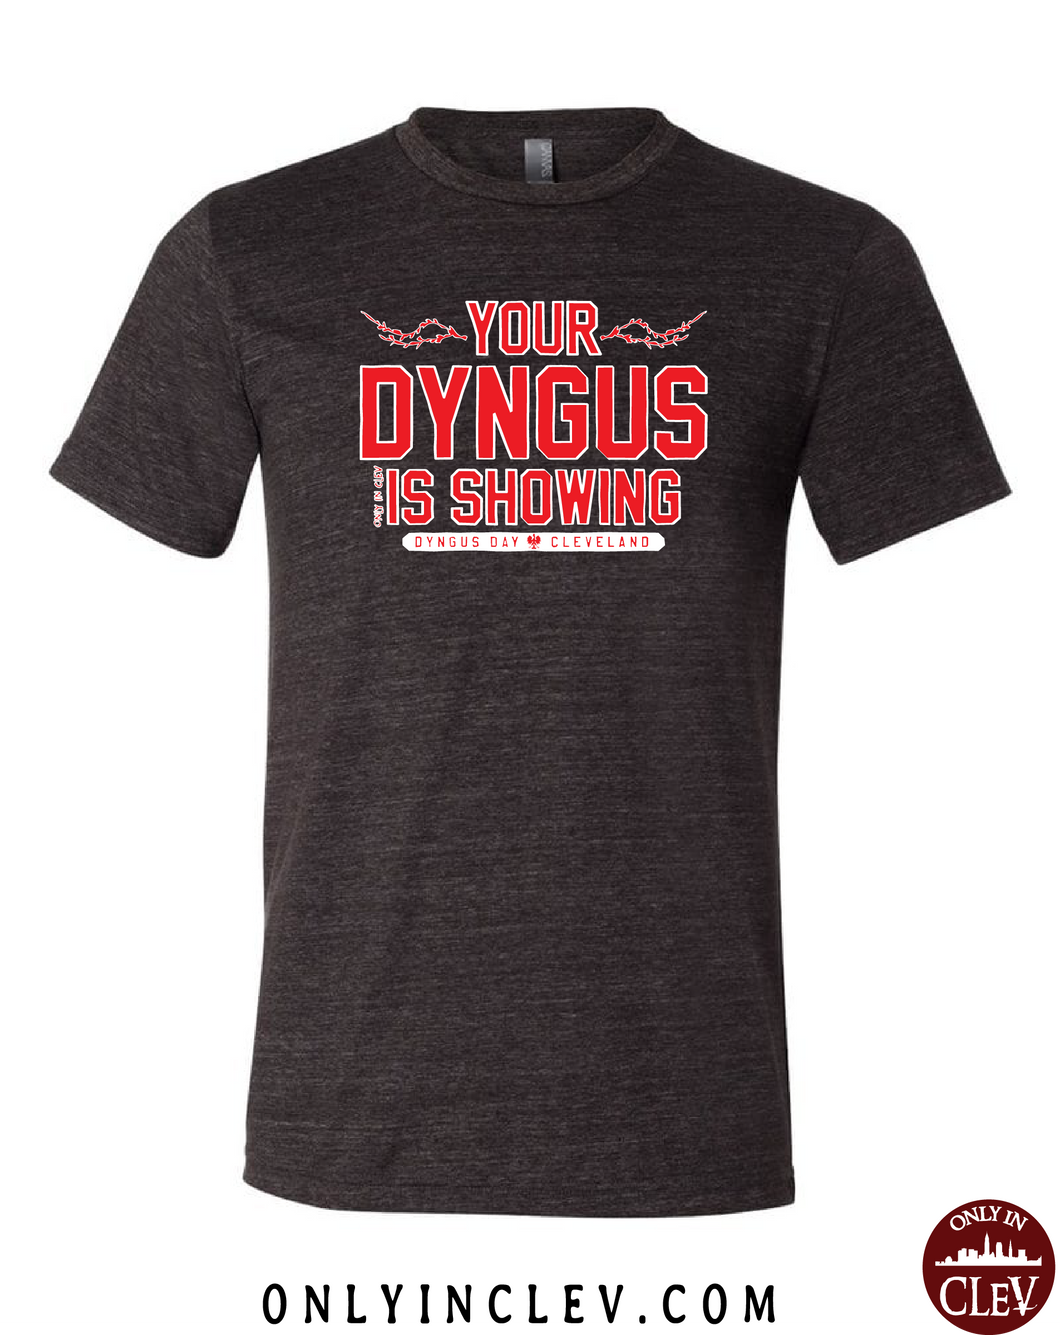 Your Dyngus Is Showing